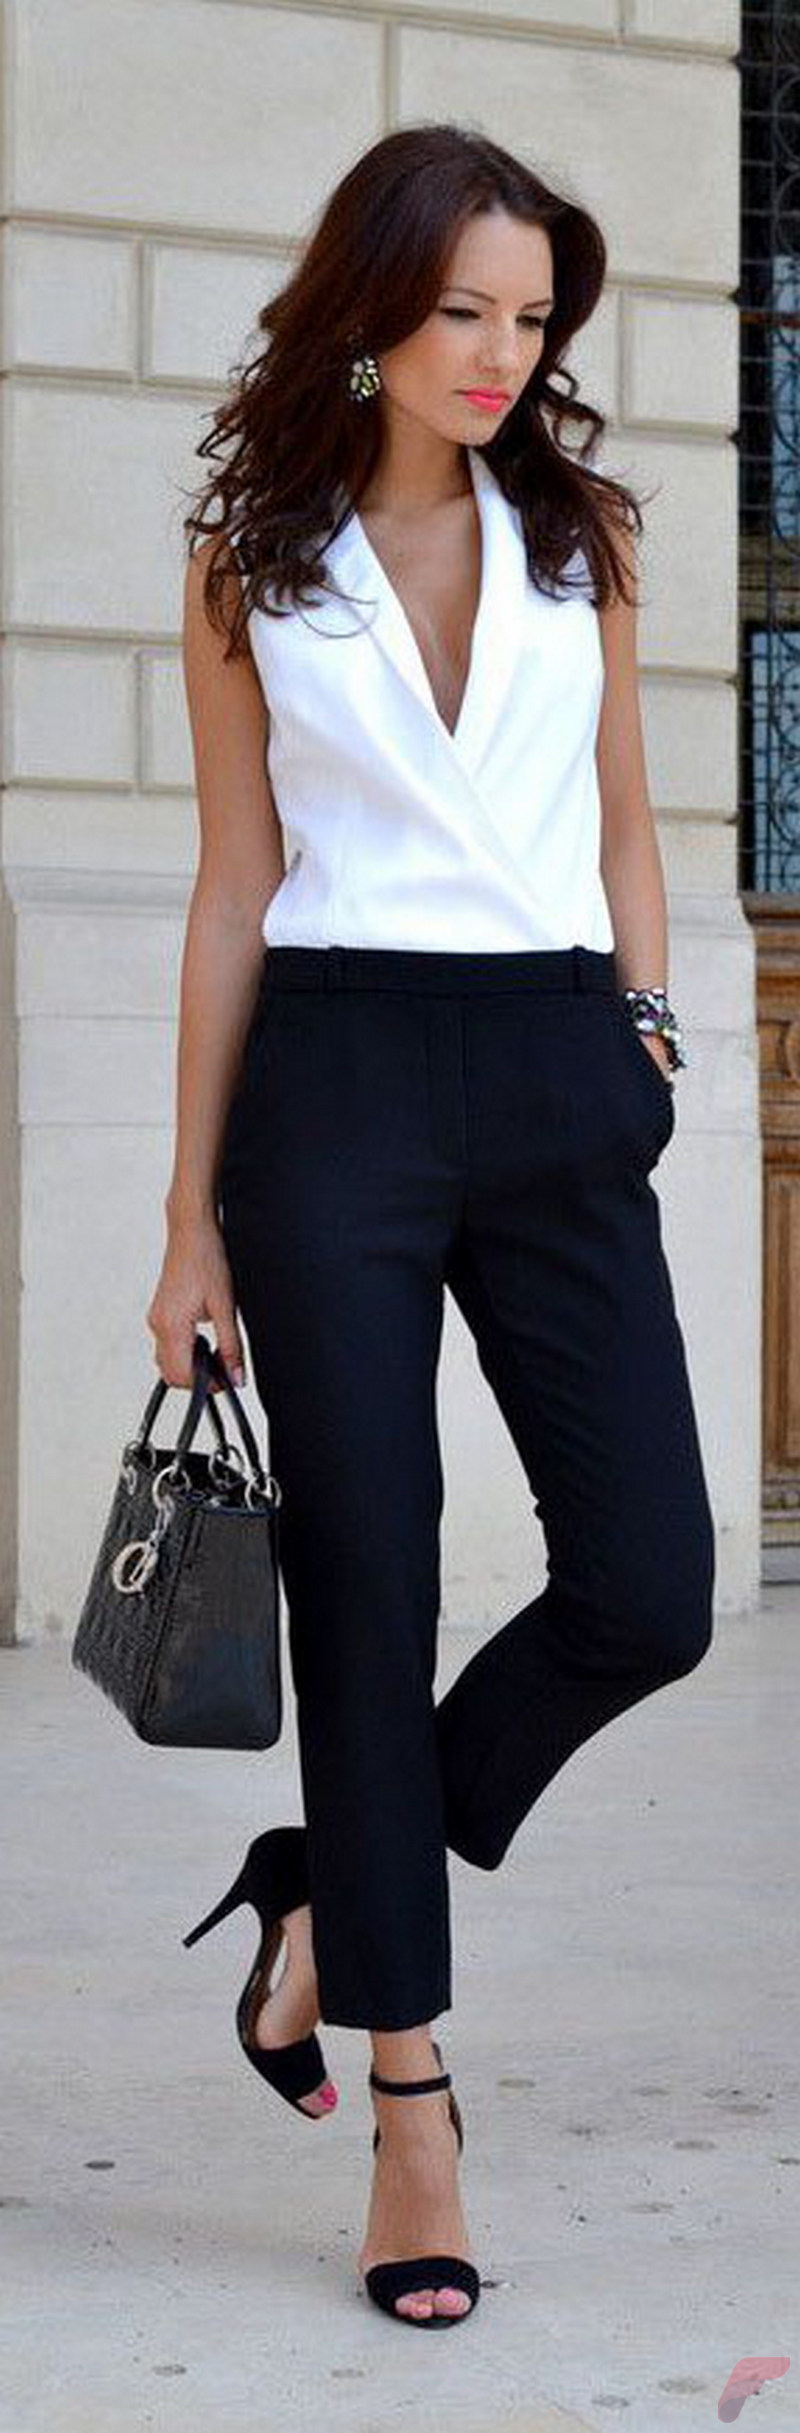 Women white shirt for work (311)